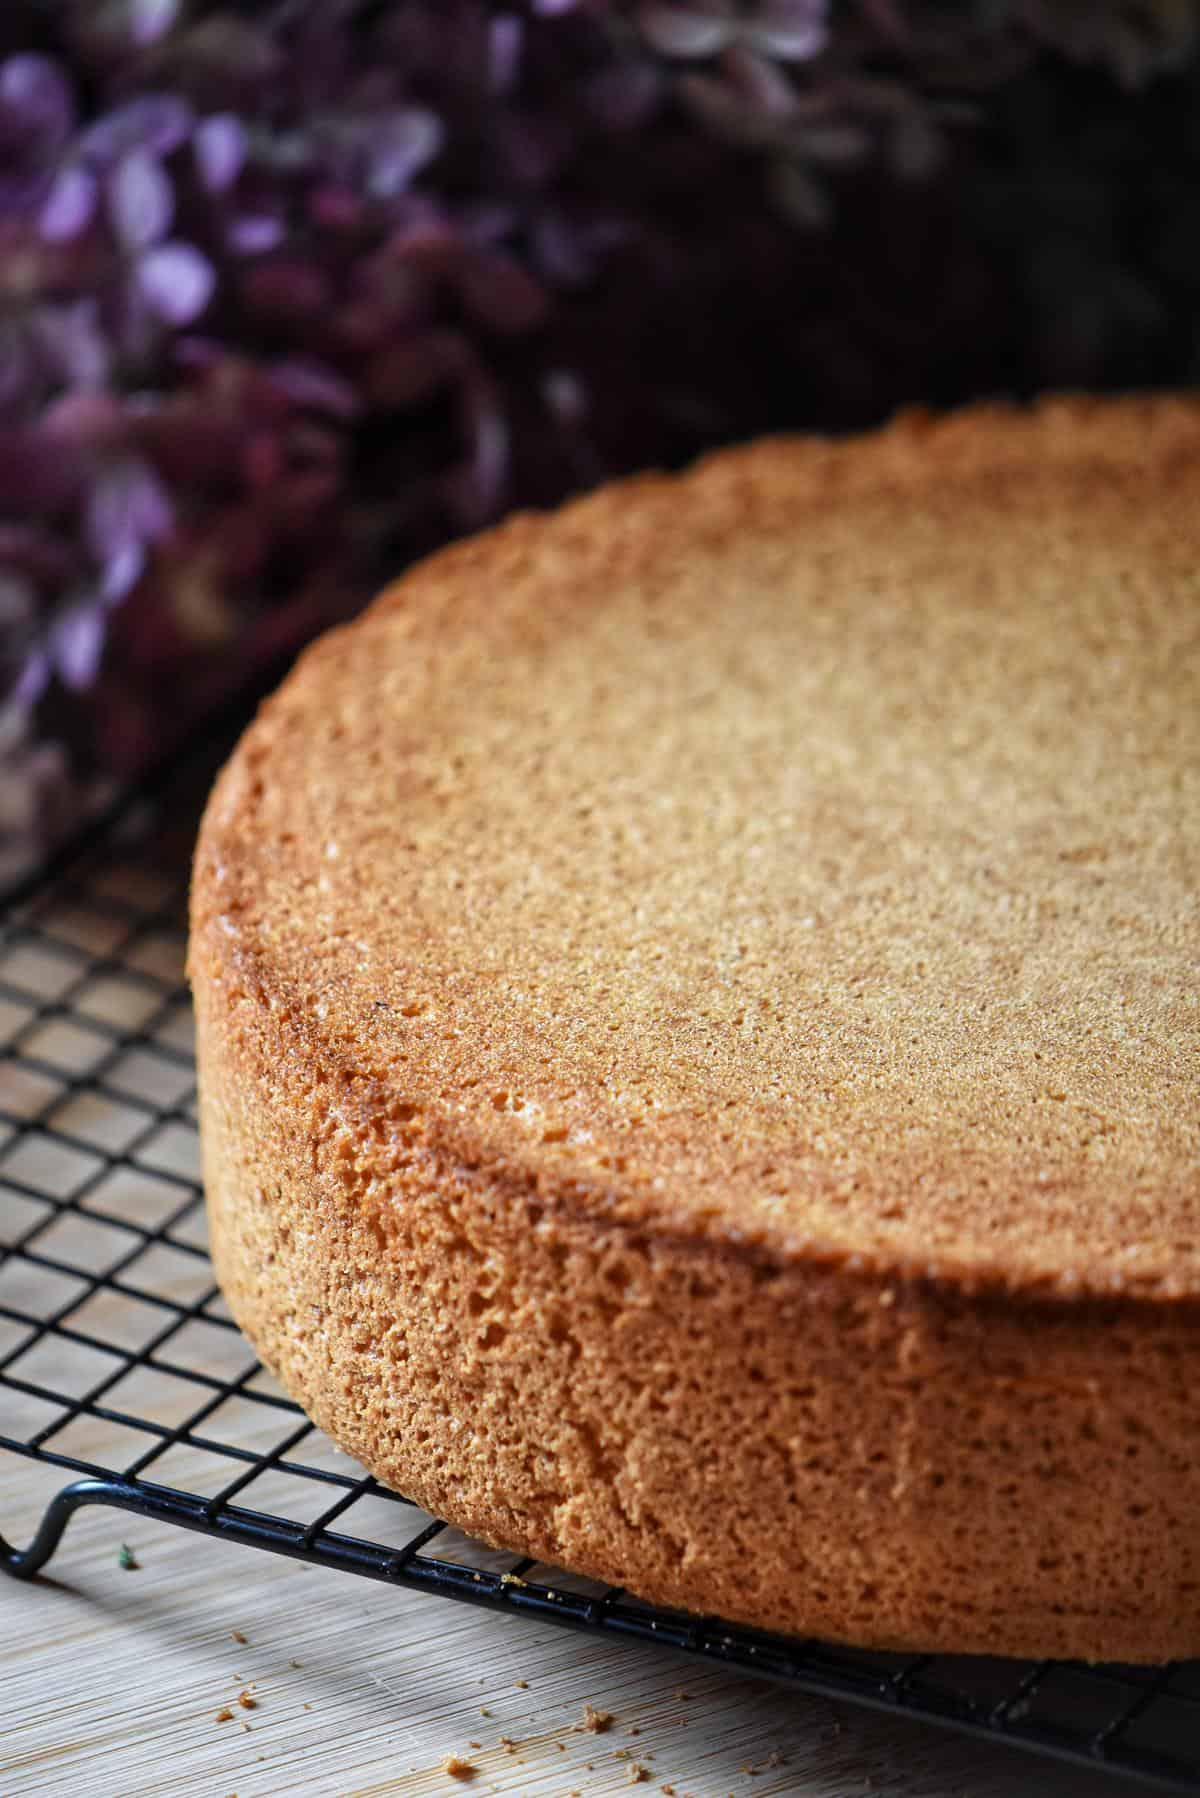 A sponge cake on a cooling rack.